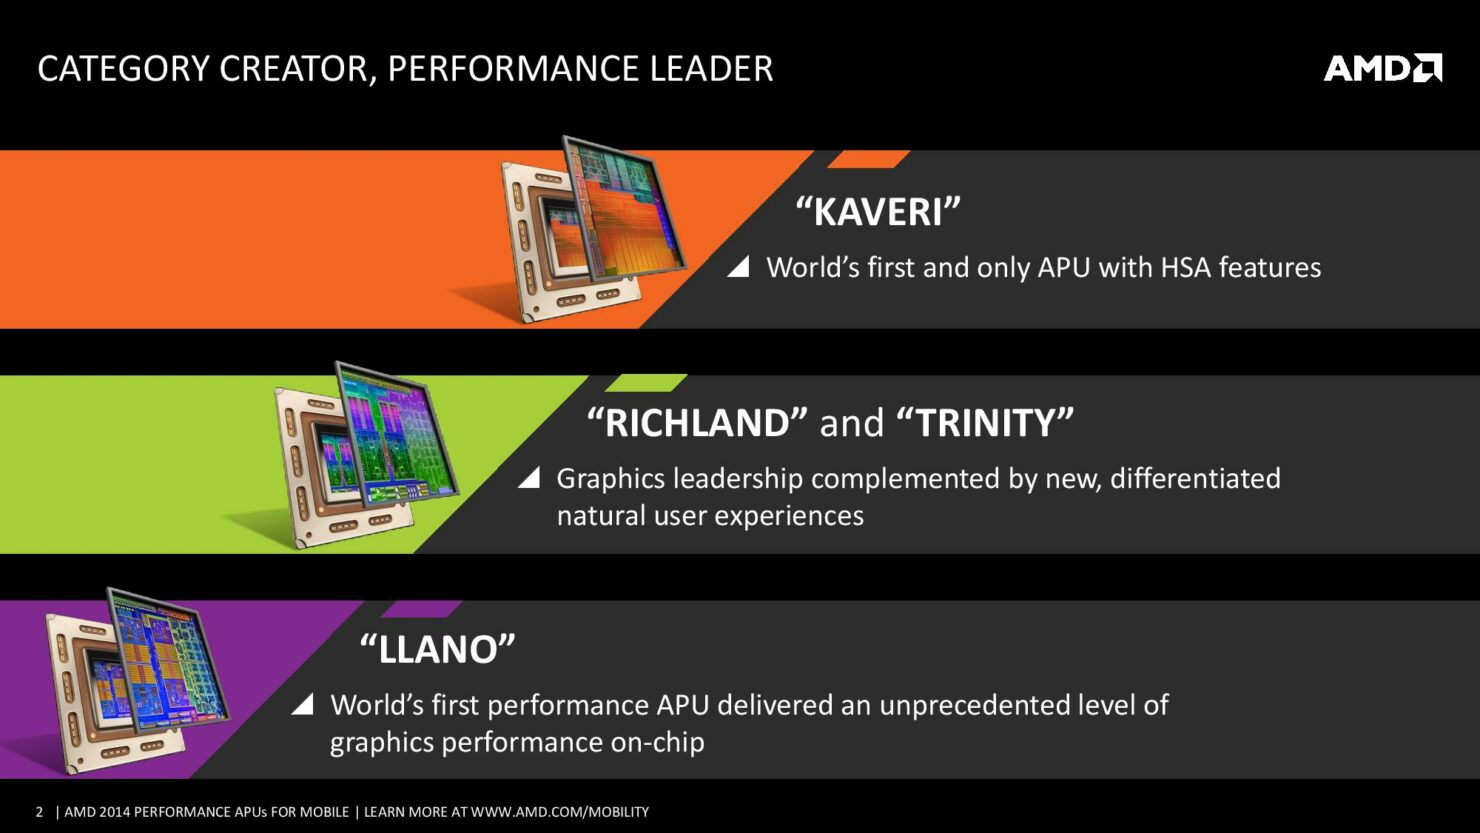 amd2014performancemobileapus-140528183404-phpapp02-page-002